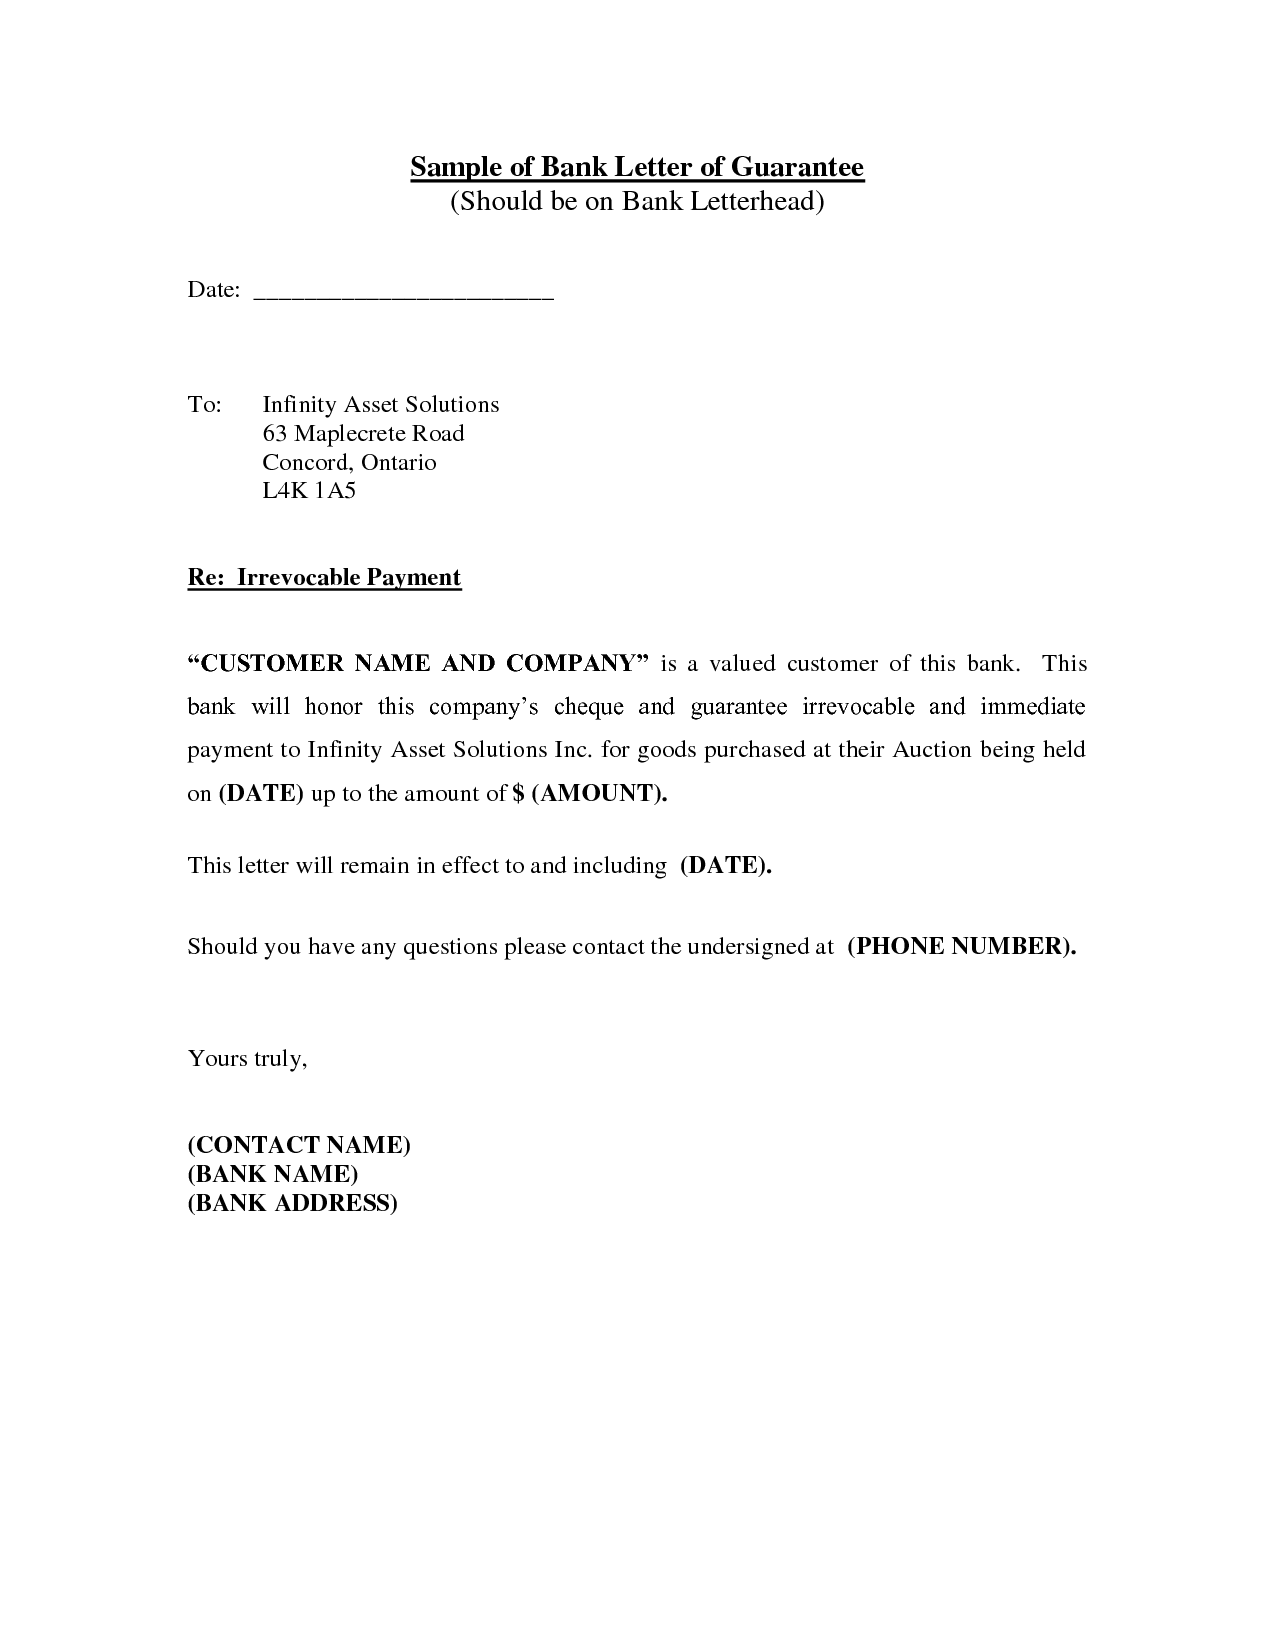 Sample Letter From Bank Reference Guarantee Cancellation Release